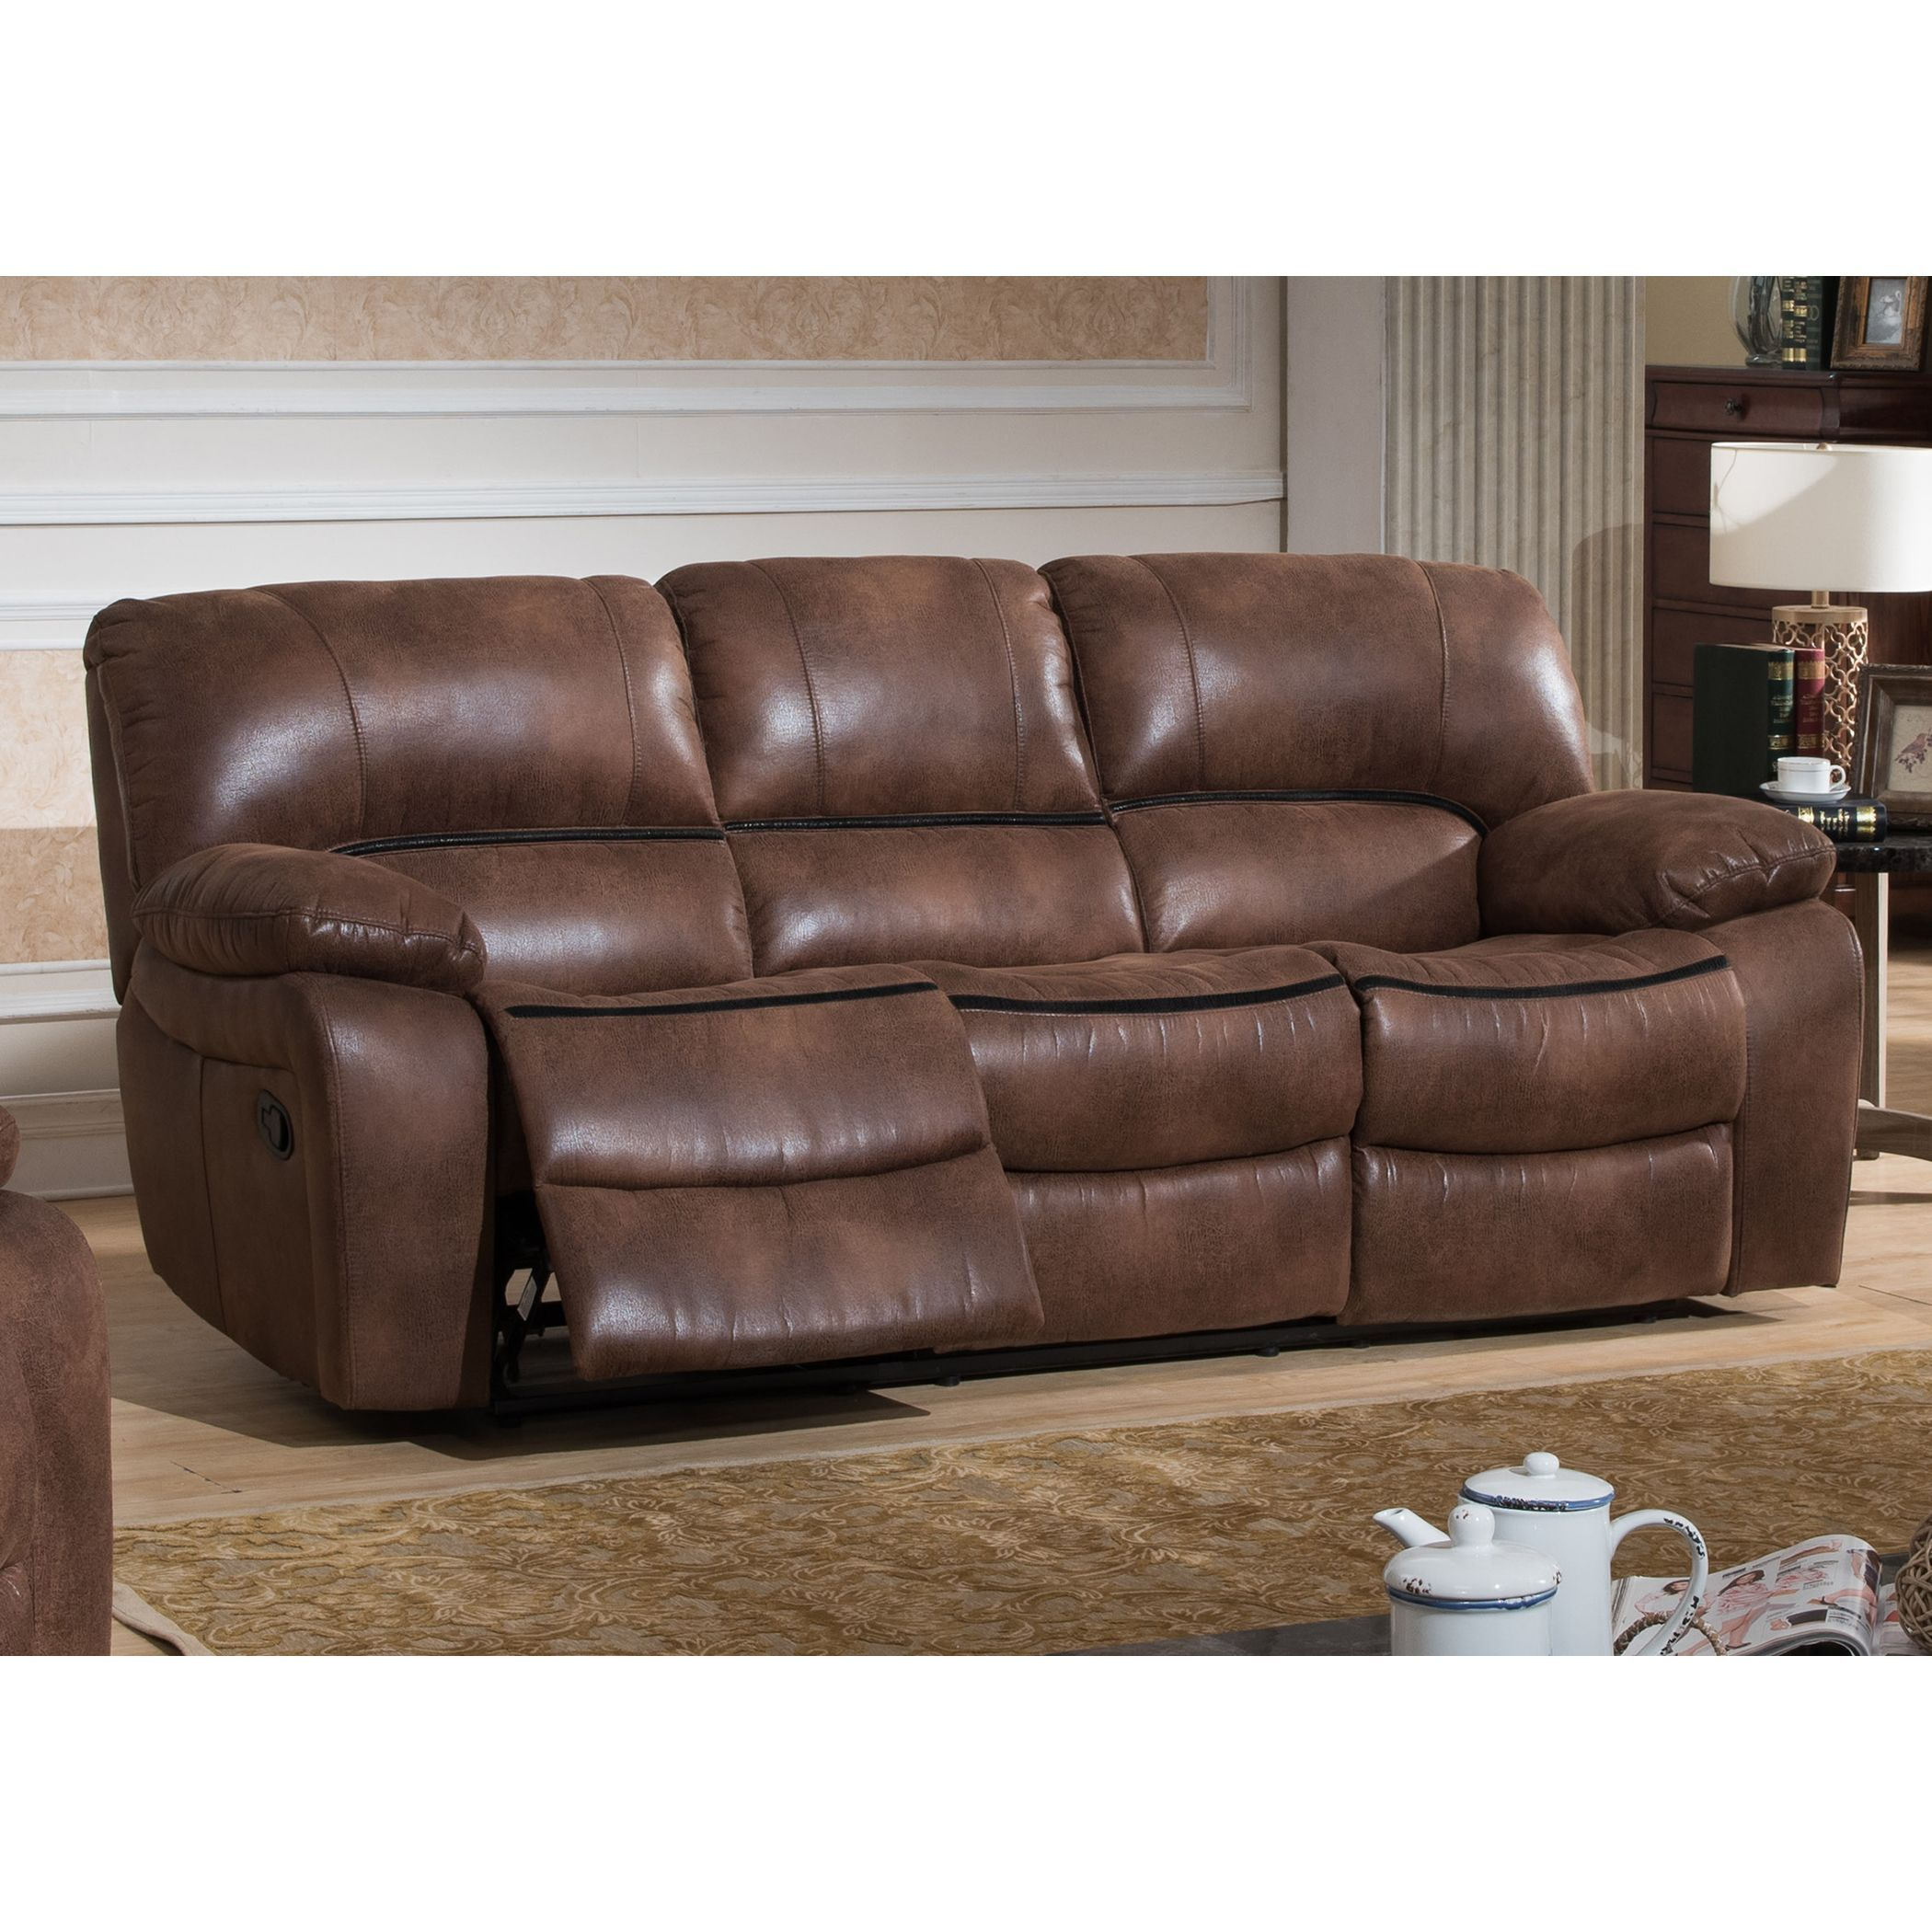 Strange Ac Pacific Leighton Transitional Reclining Sofa Products Alphanode Cool Chair Designs And Ideas Alphanodeonline